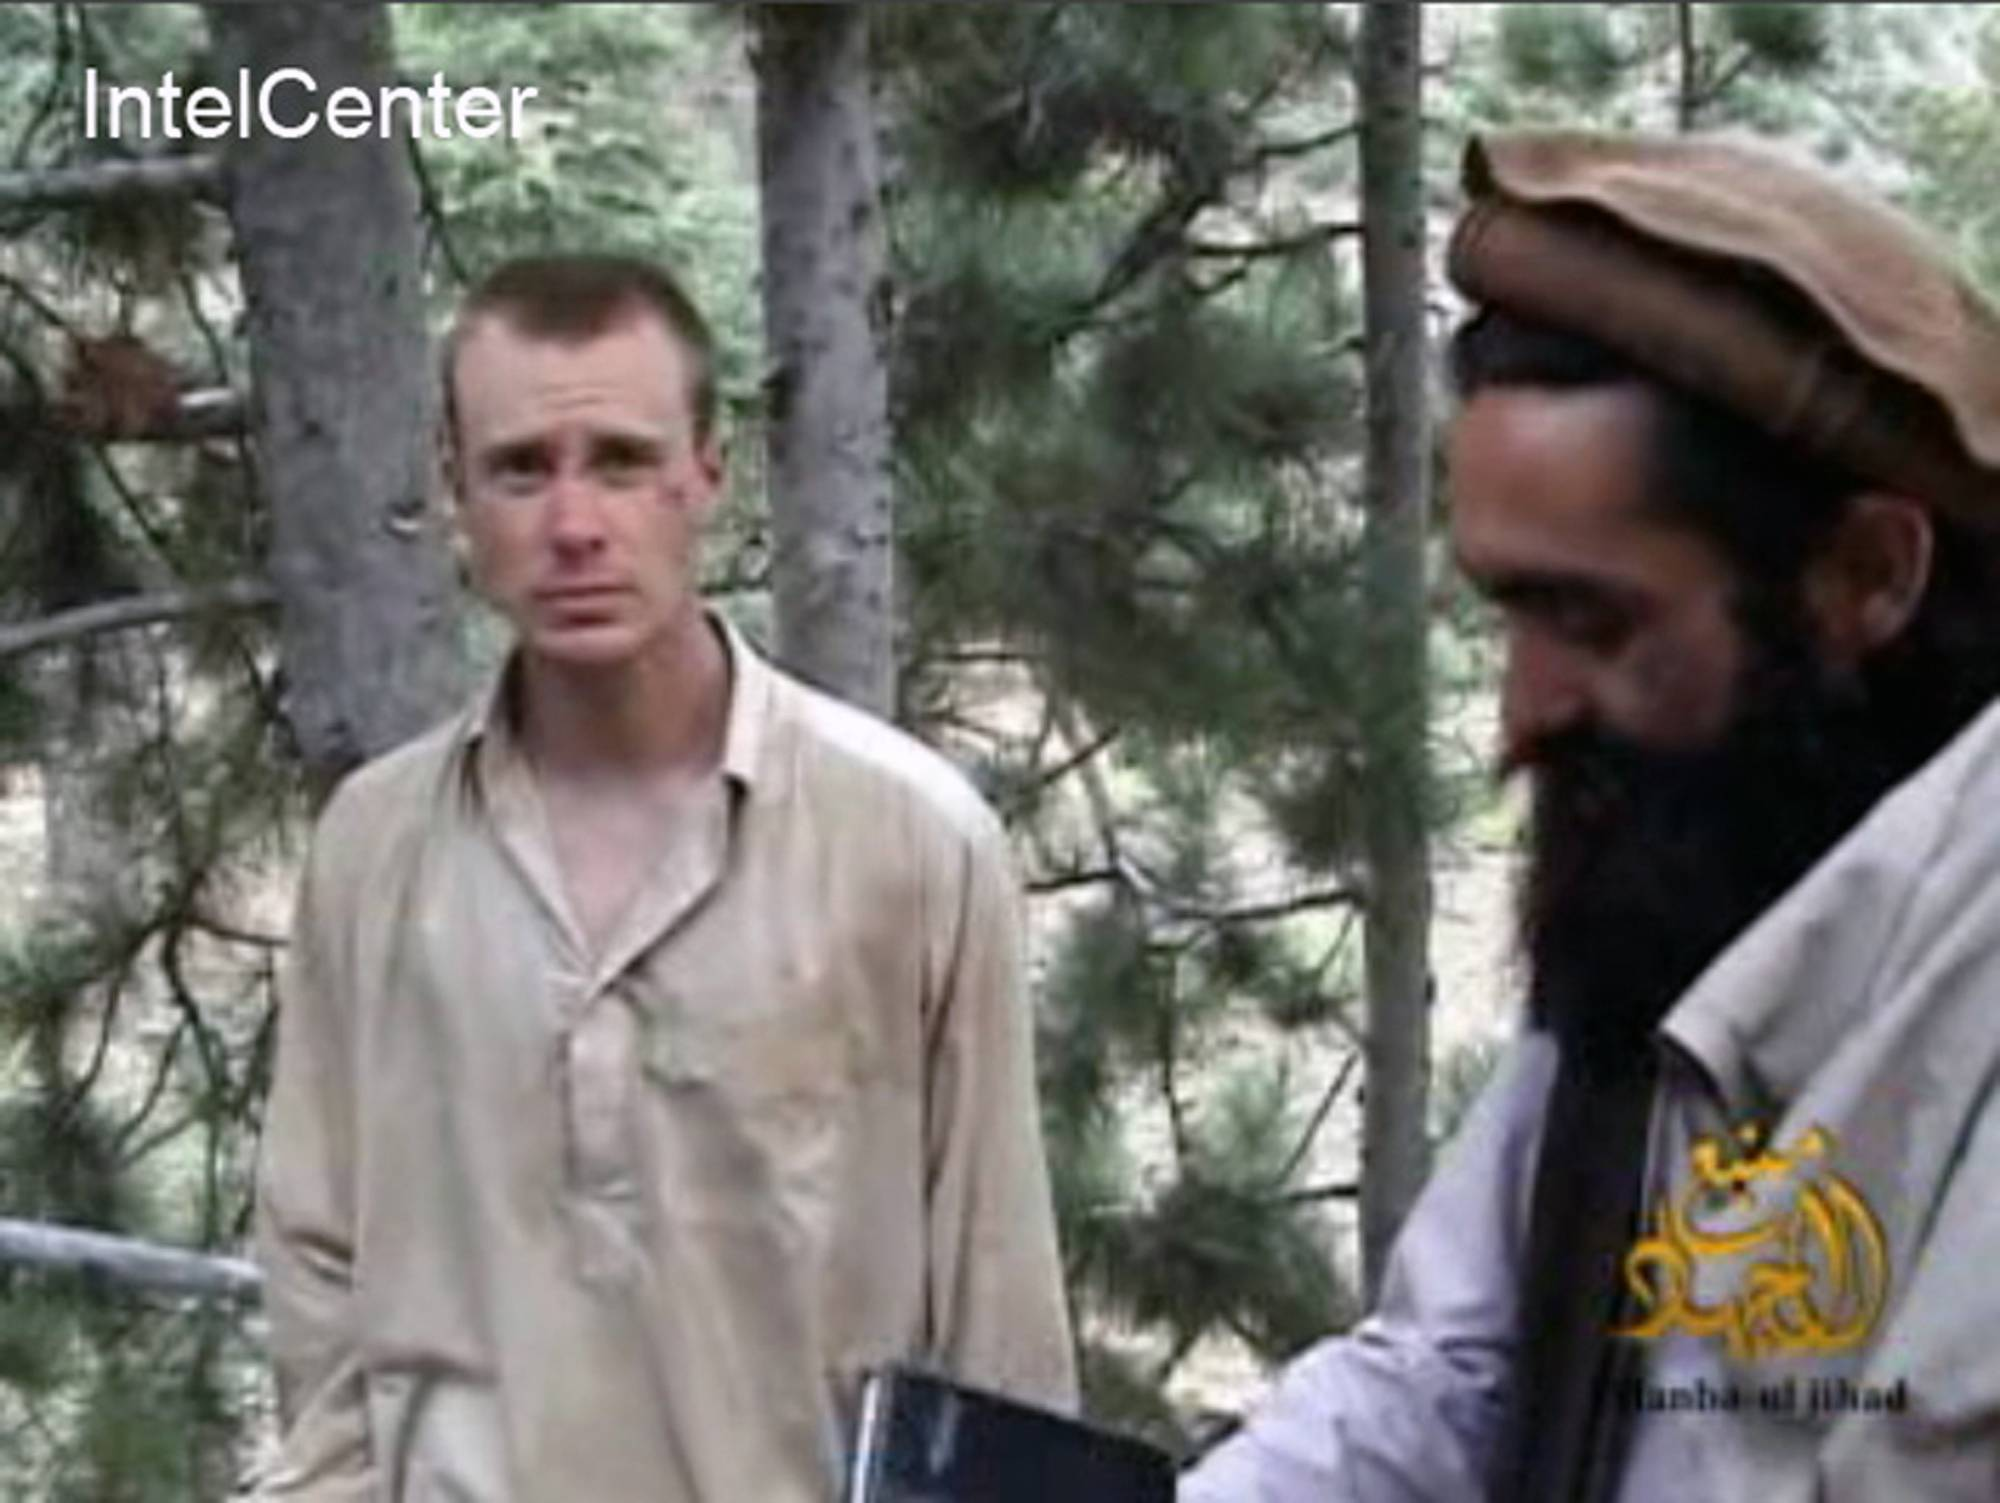 This image made from video released by the Taliban shows a man believed to be Bowe Bergdahl at left. Bergdahl, a U.S. Army soldier, went missing from his outpost in Afghanistan in June 2009 and was released from Taliban captivity on May 31 in exchange for five enemy combatants held in the U.S. prison in Guantanamo Bay, Cuba.